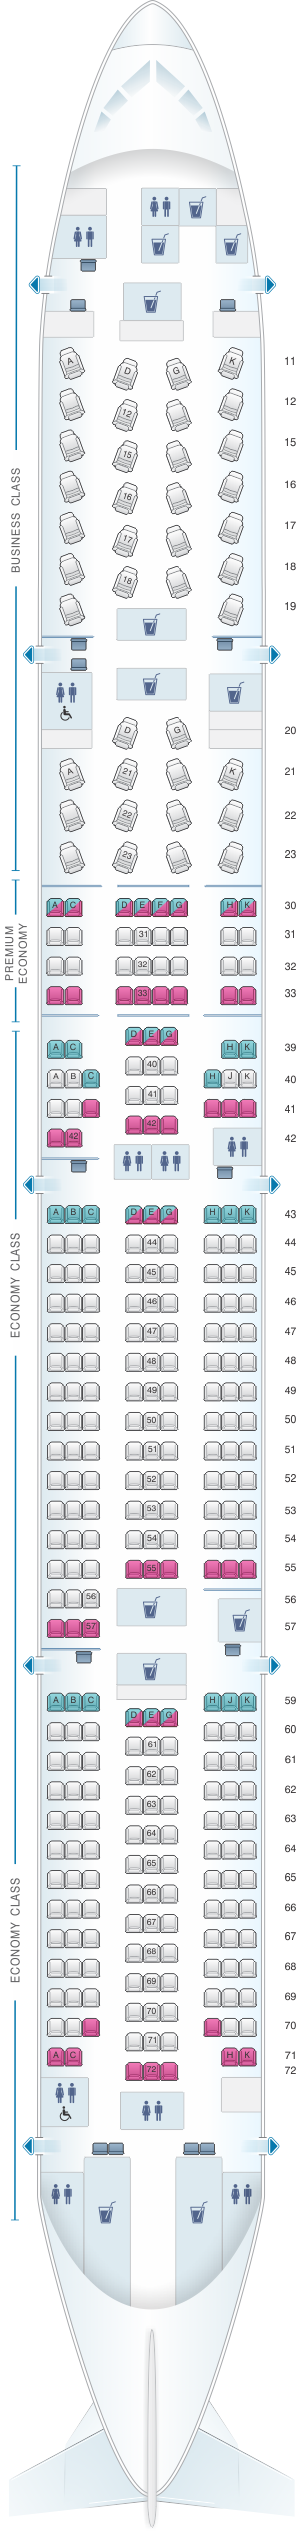 Seat map for Cathay Pacific Airways Boeing B777 300 (77G)